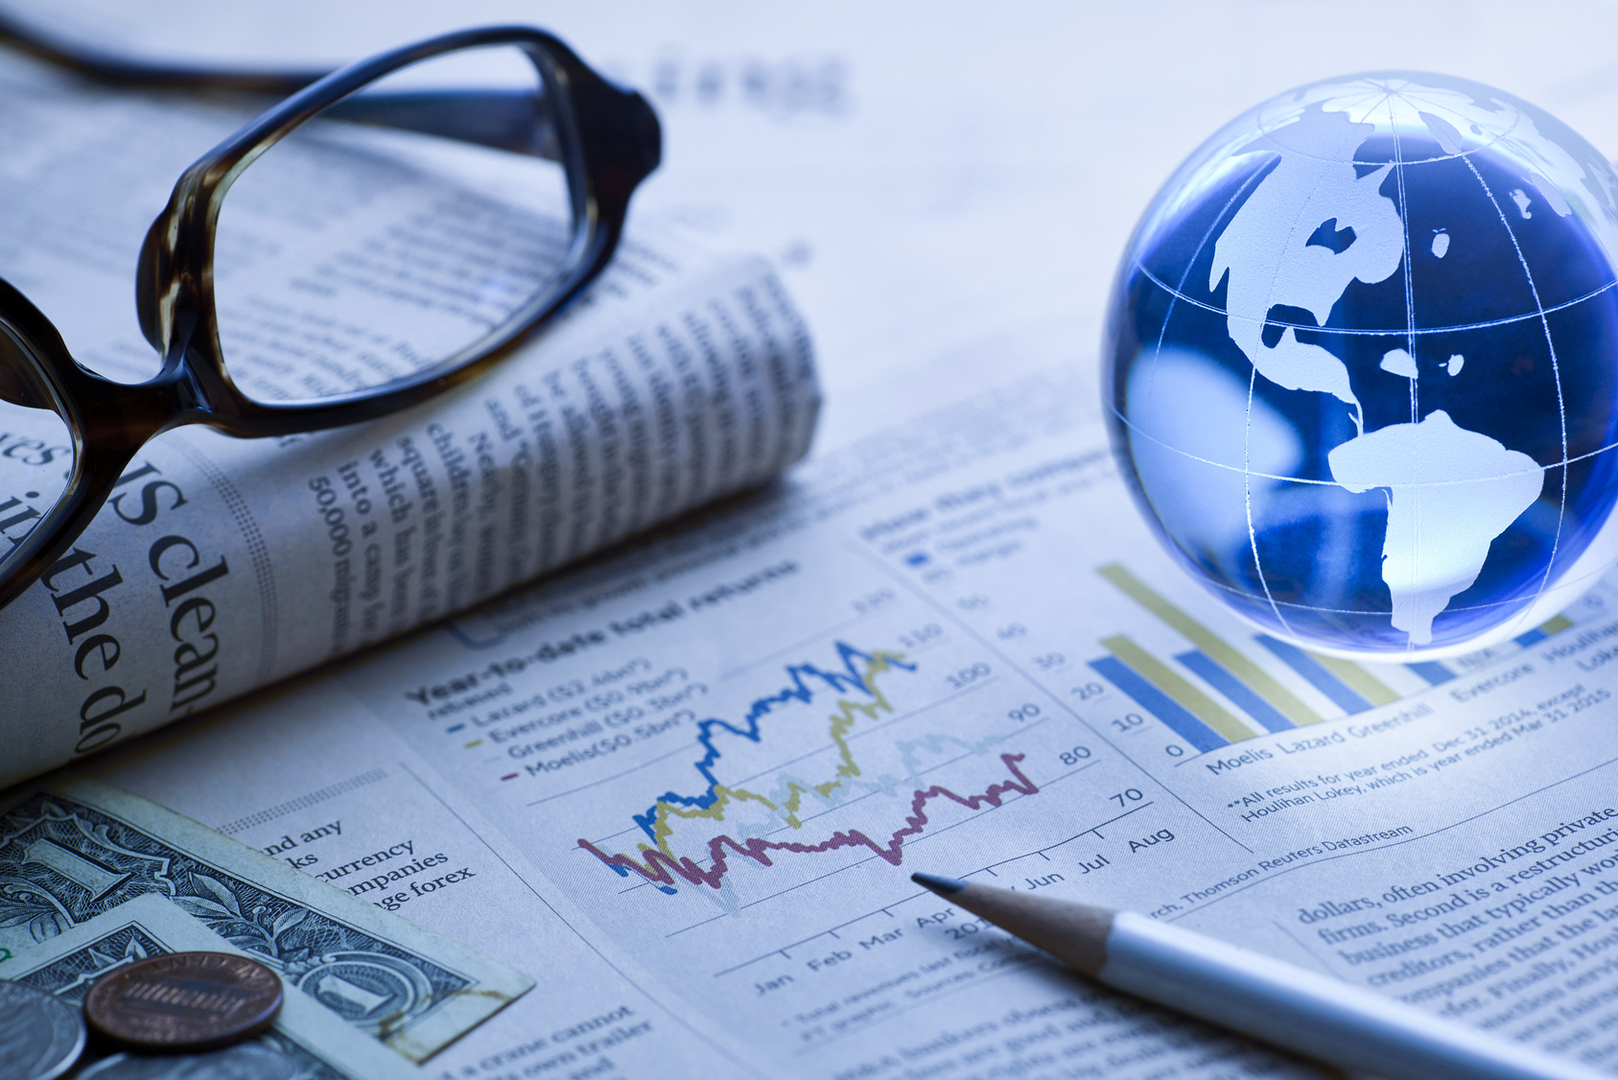 global debt solutions inc commercial collections and recovery